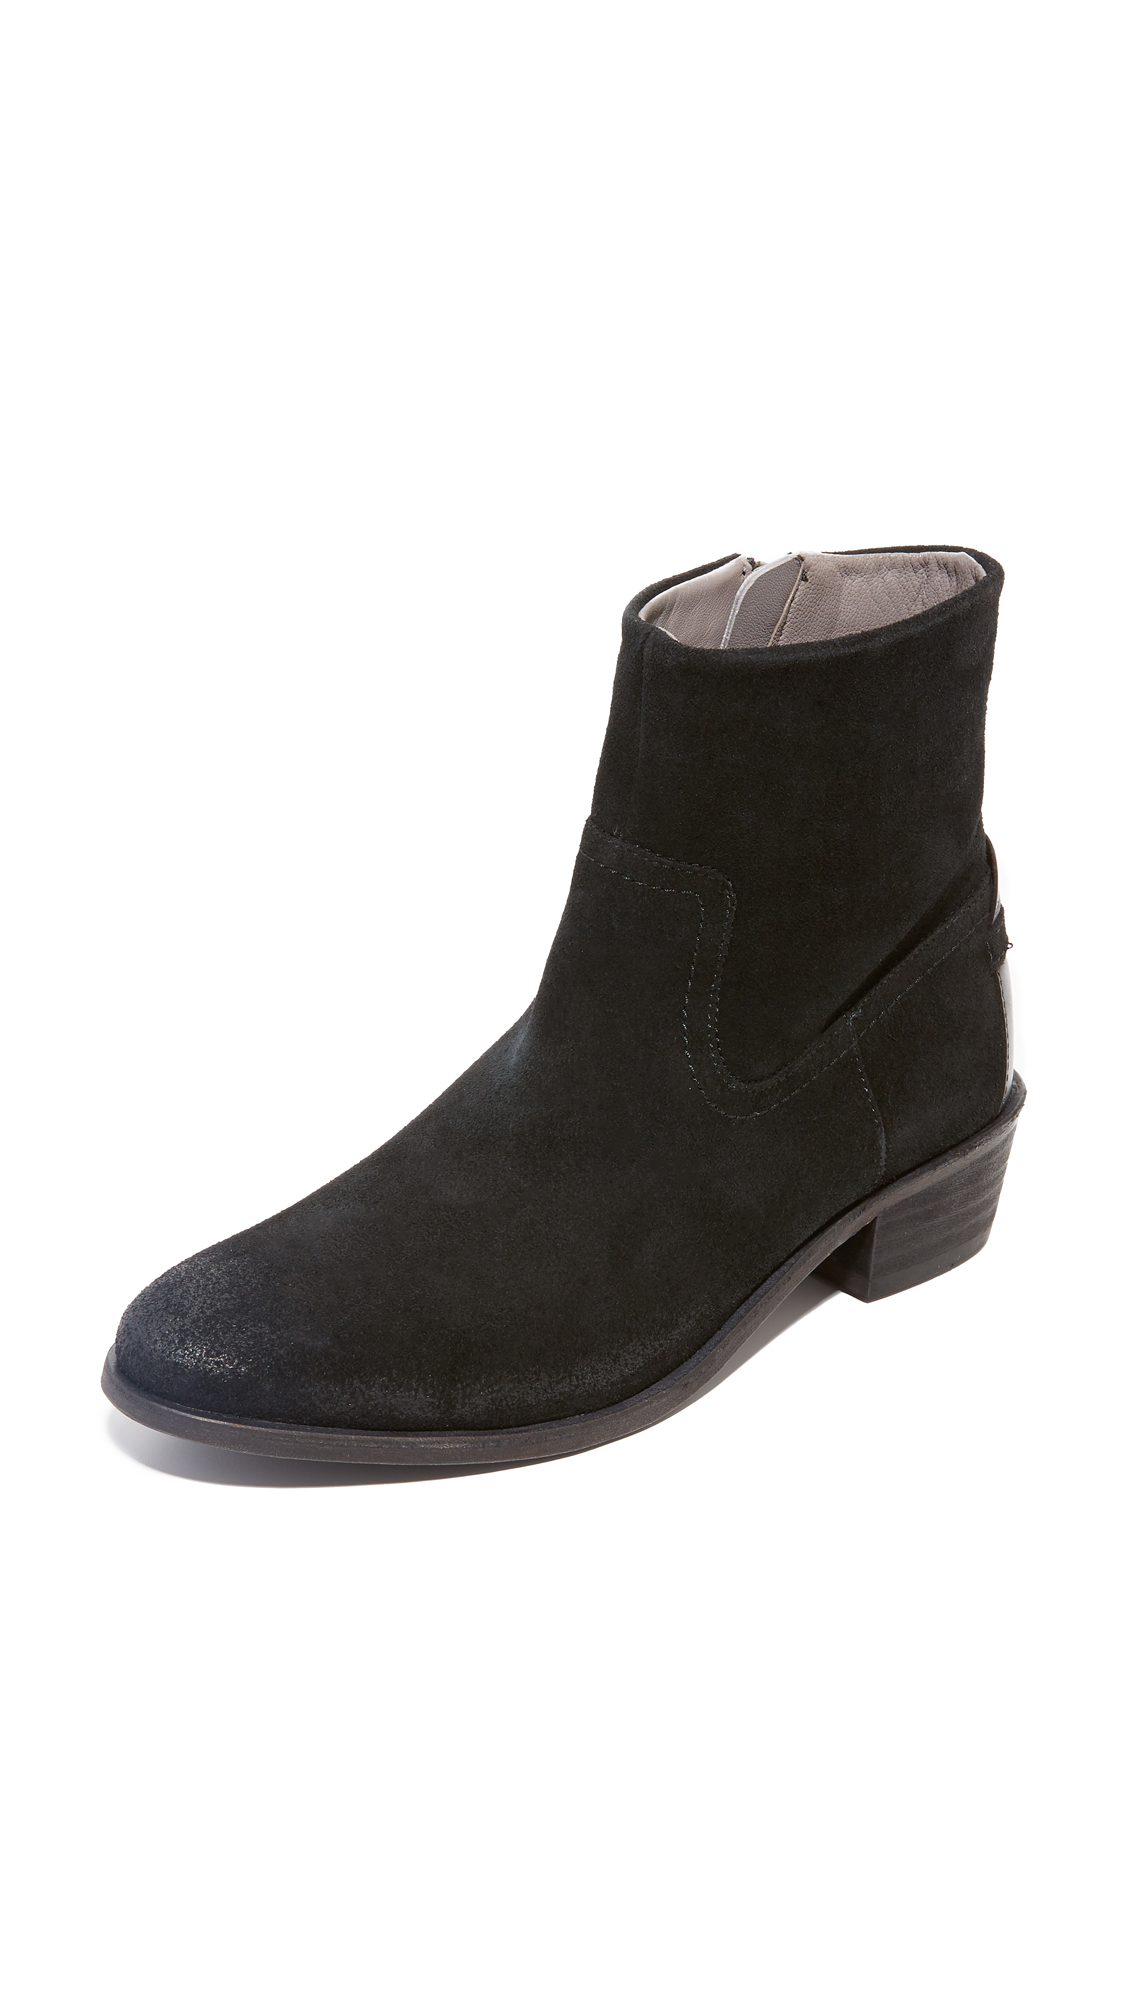 H By Hudson Laya Booties - Black